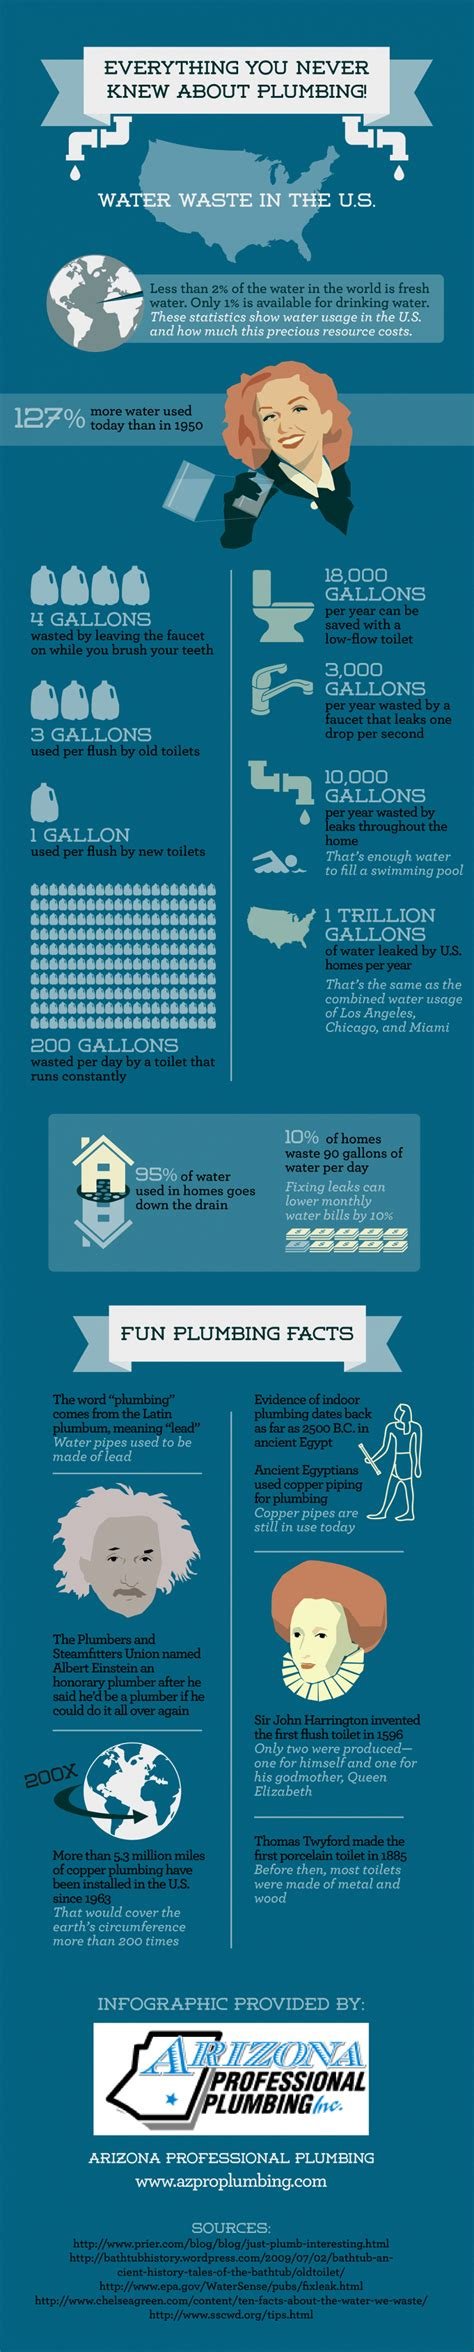 Plumbing Company Slogans by 51 Catchy Plumbing Slogans And Taglines Brandongaille